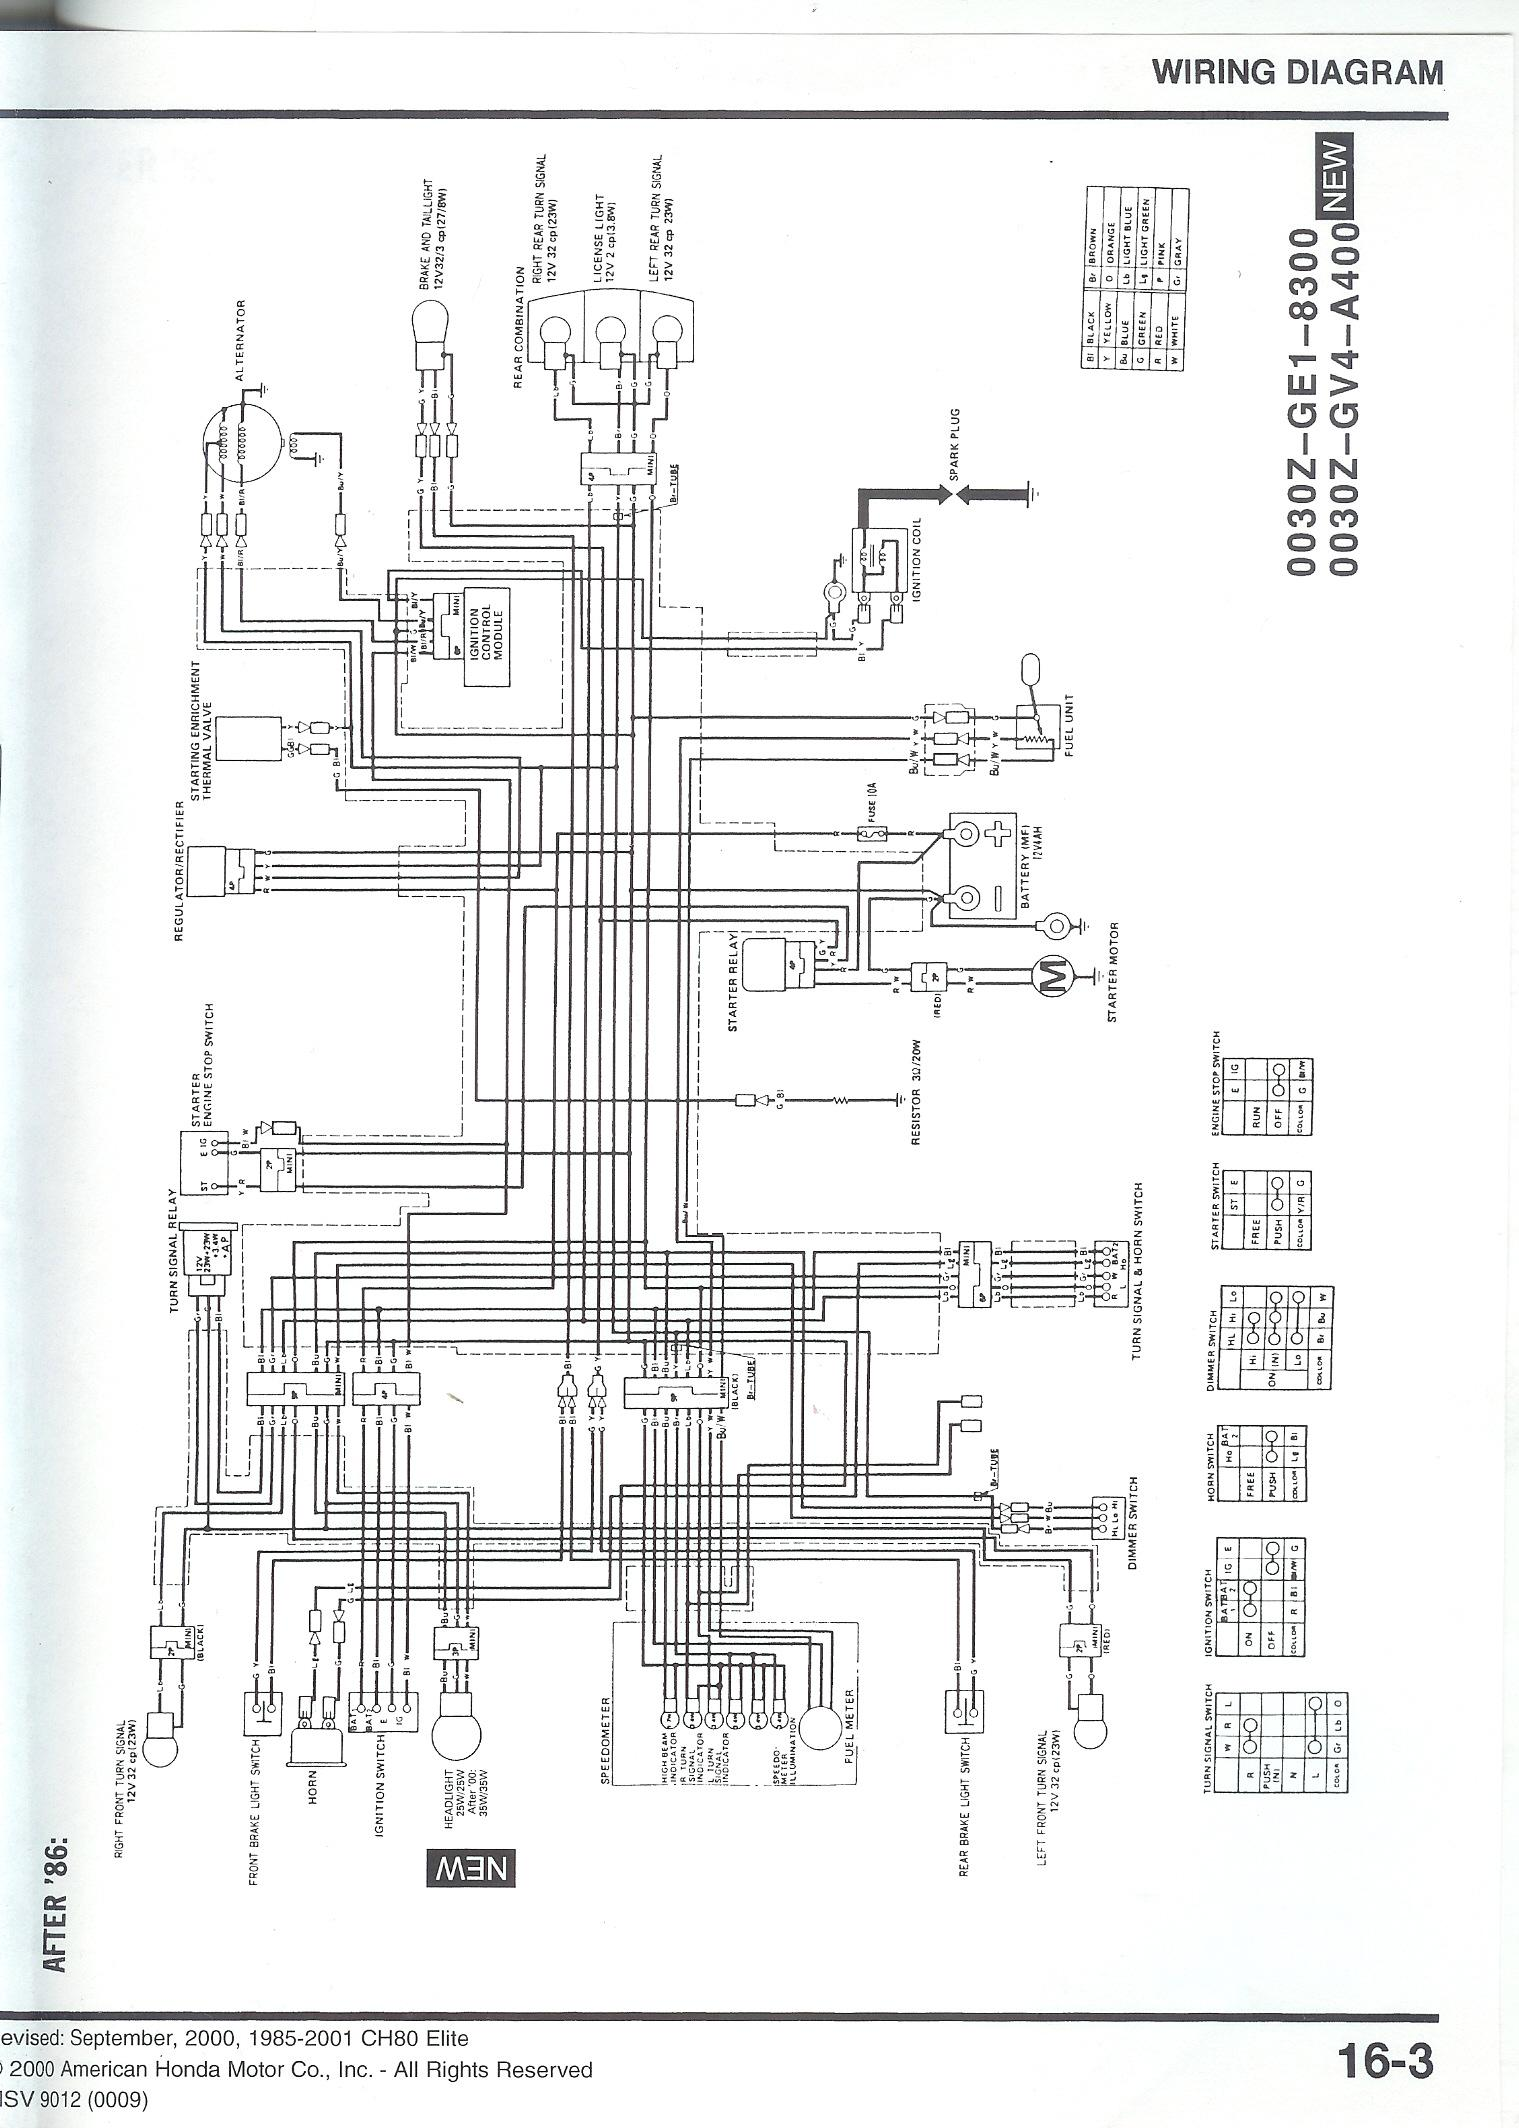 Wiring diagram. Page 1 of 1.